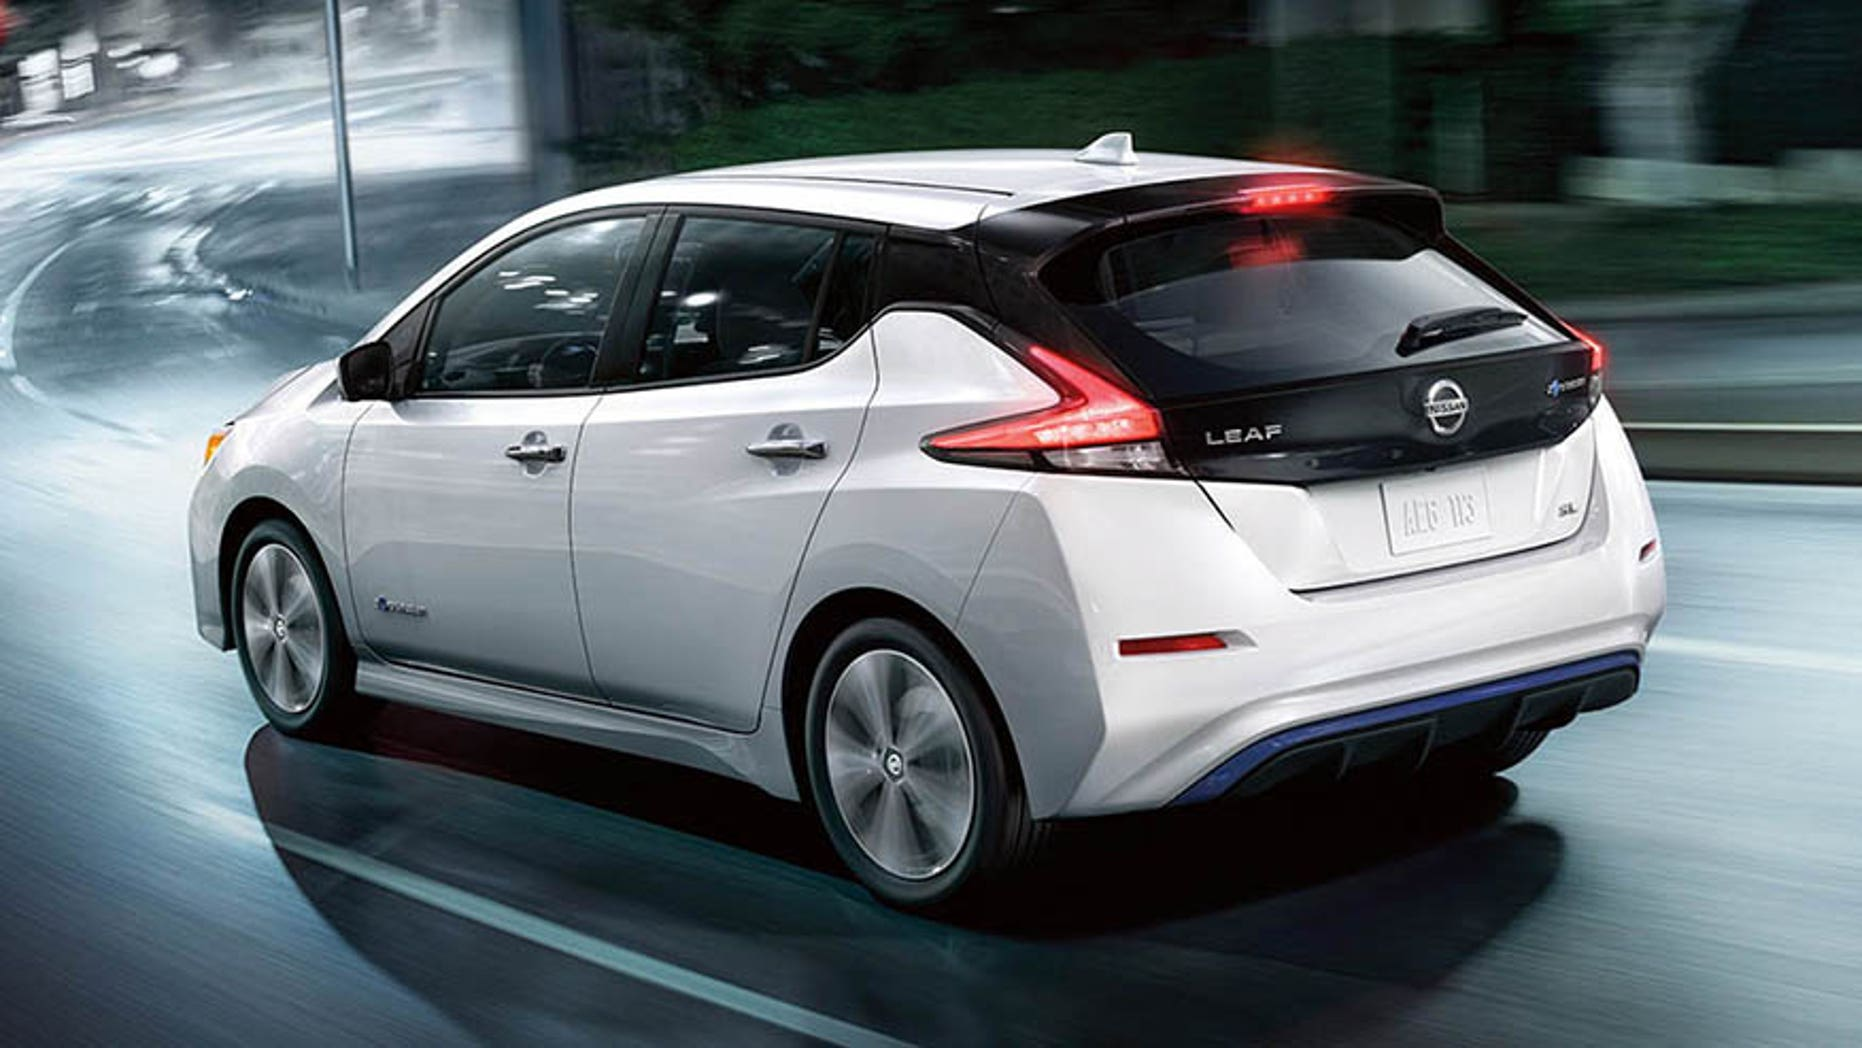 The Nissan Leaf emits a sound at low speeds to alert pedestrians and cyclists to its presence.